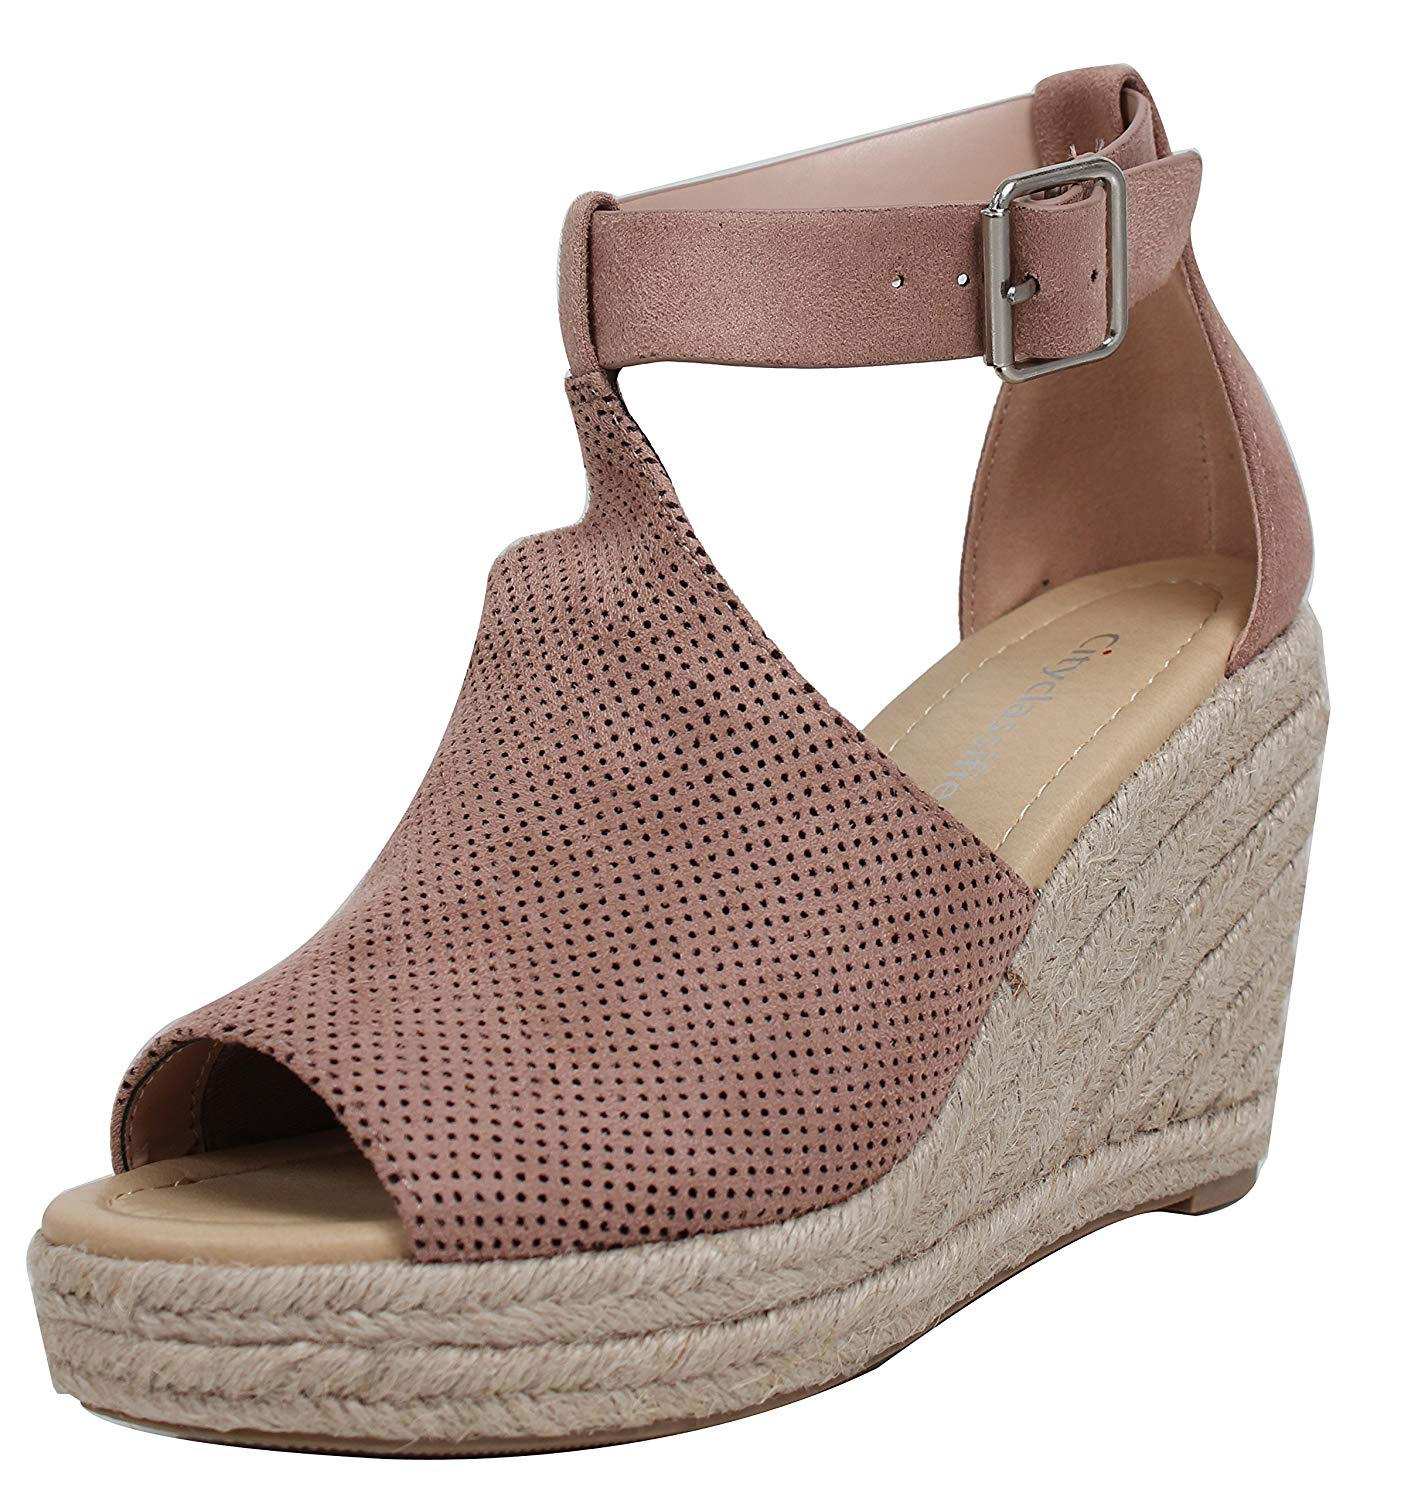 City Classified Women/'s Peep Toe Perforated Ankle Strap Espadrilles Wedge